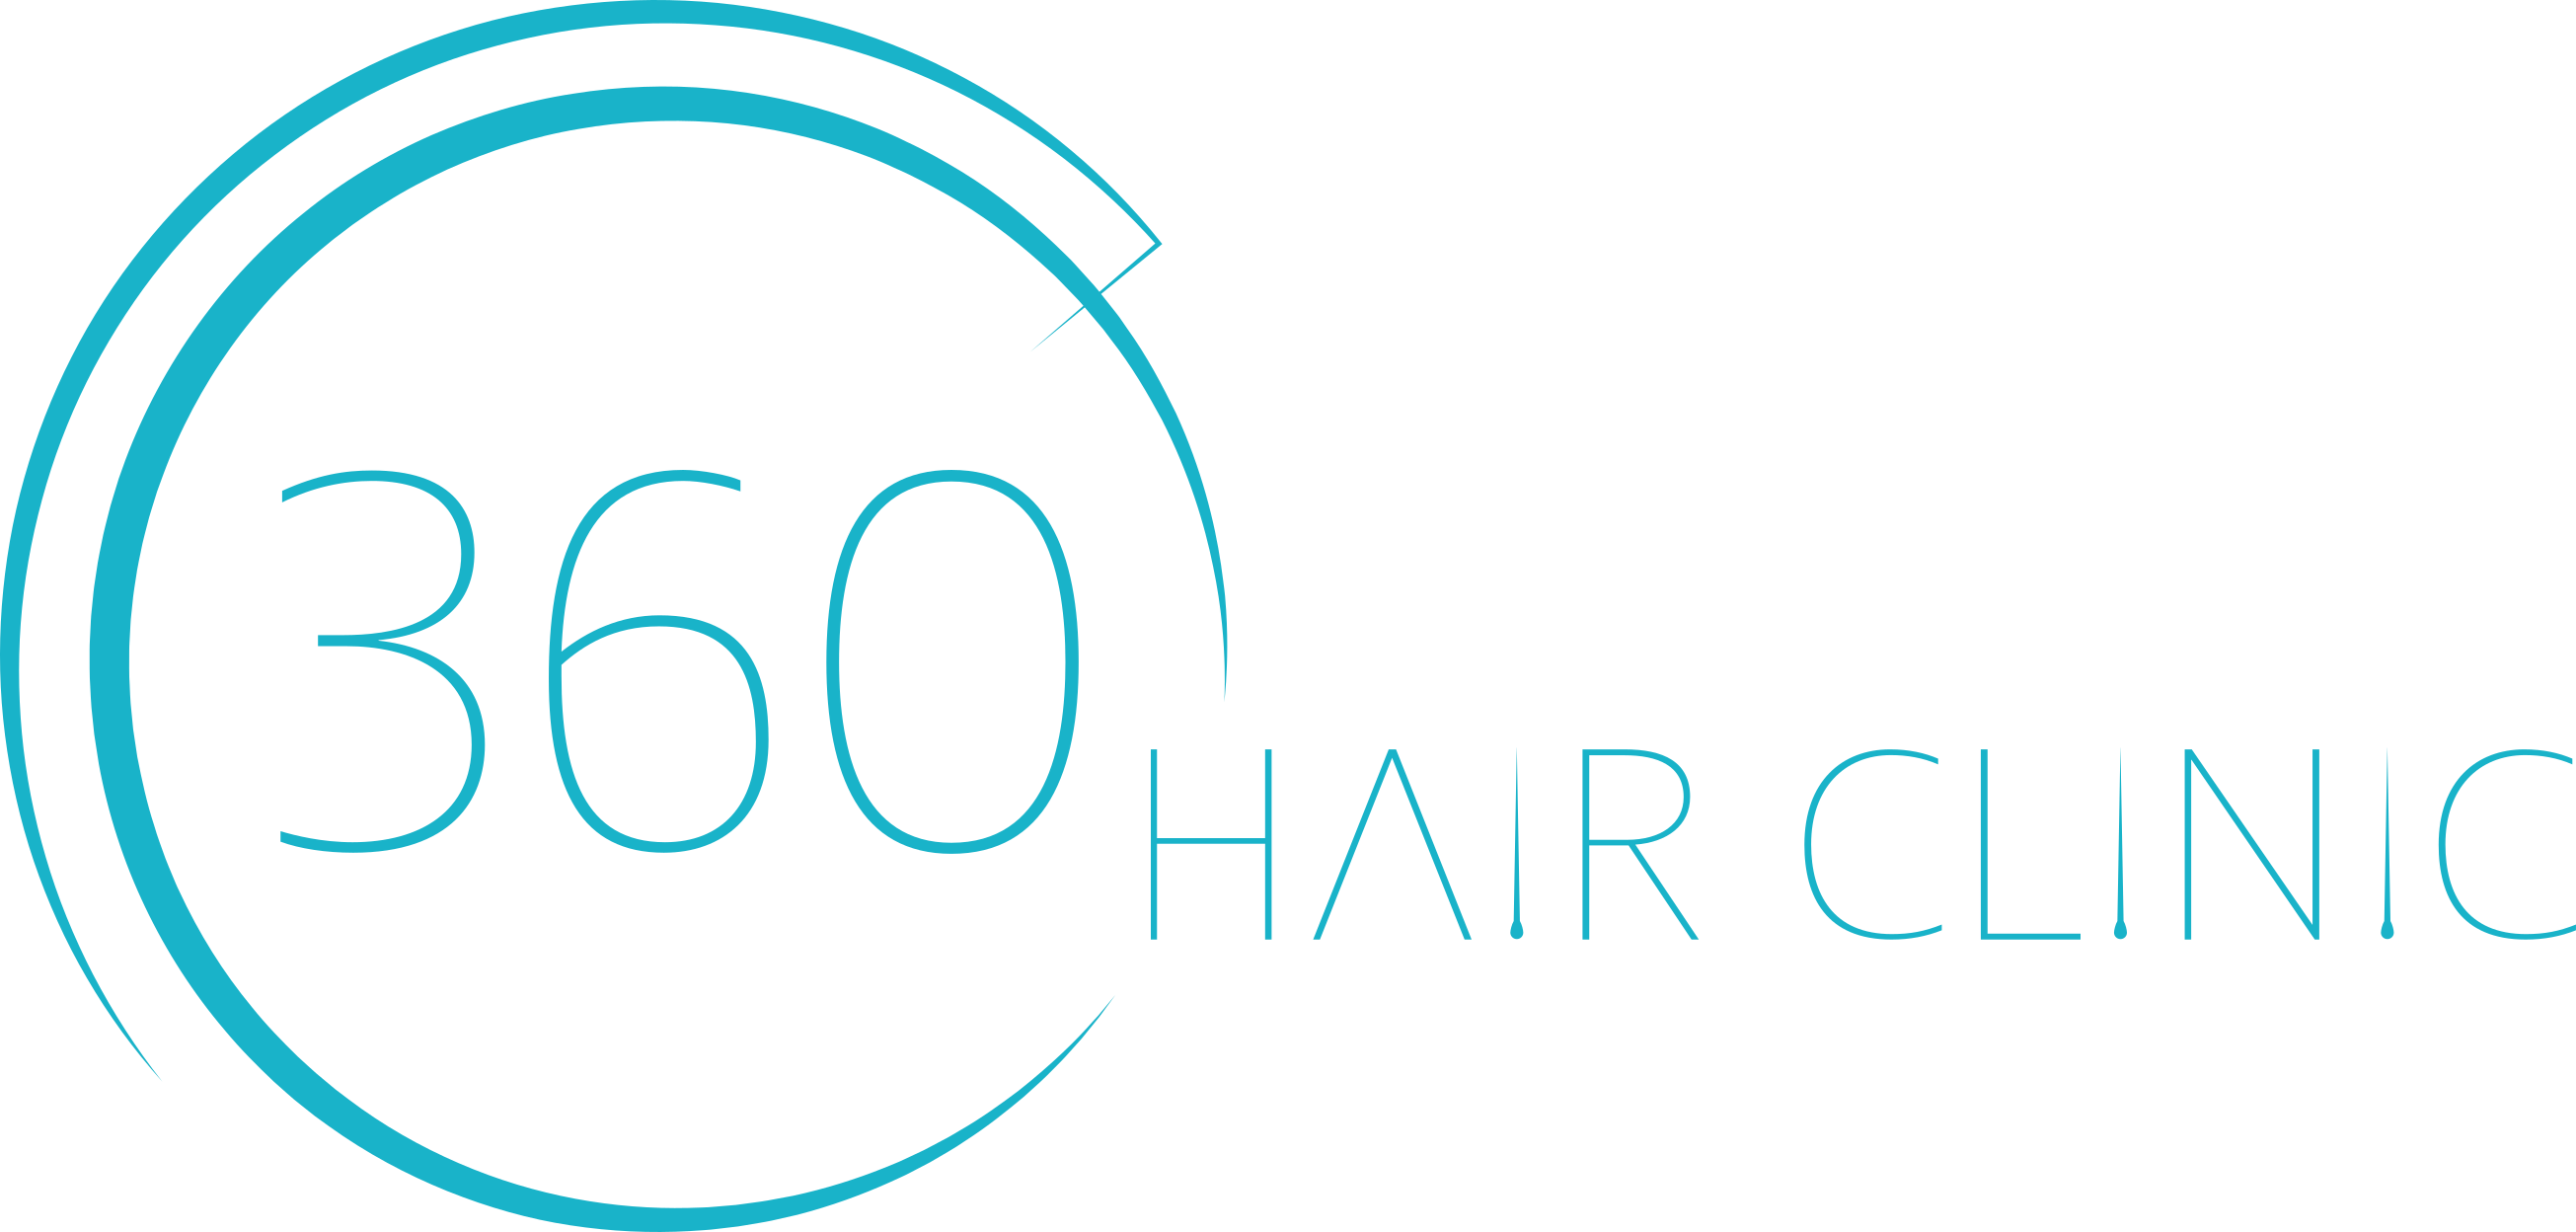 360 Hair Clinic affiliate partner logo